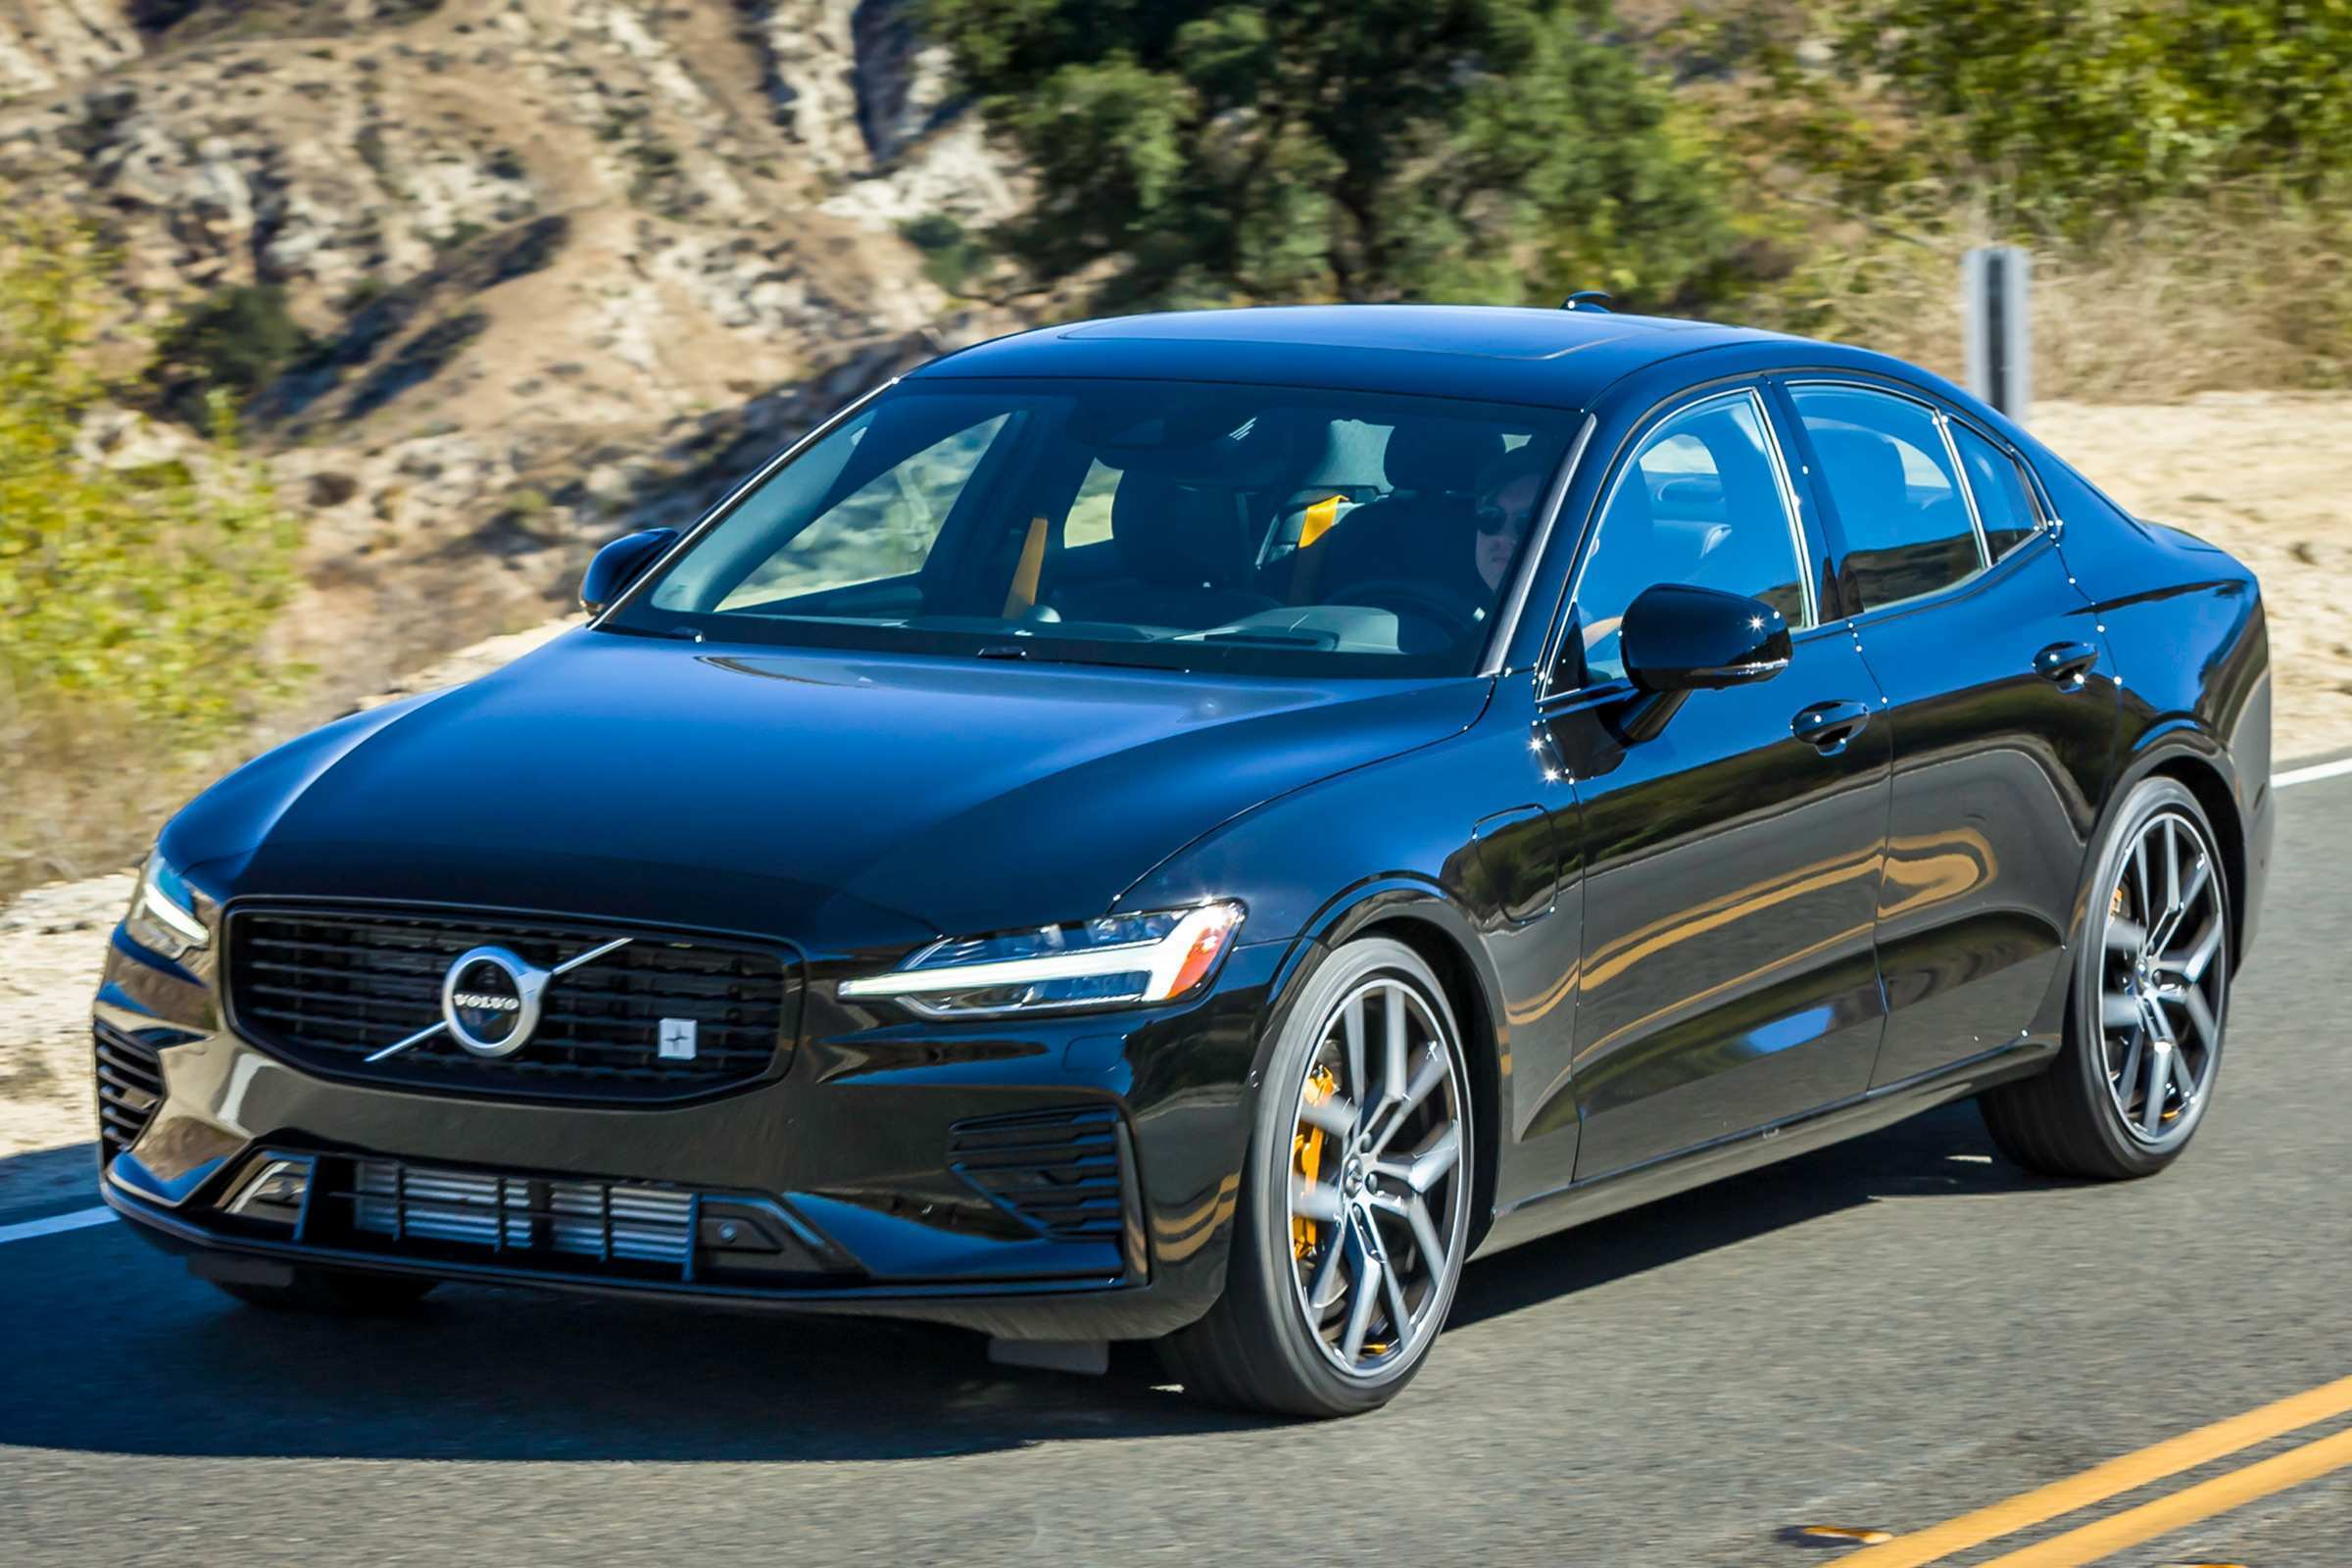 73 New 2019 Volvo S60 Polestar Price by 2019 Volvo S60 Polestar